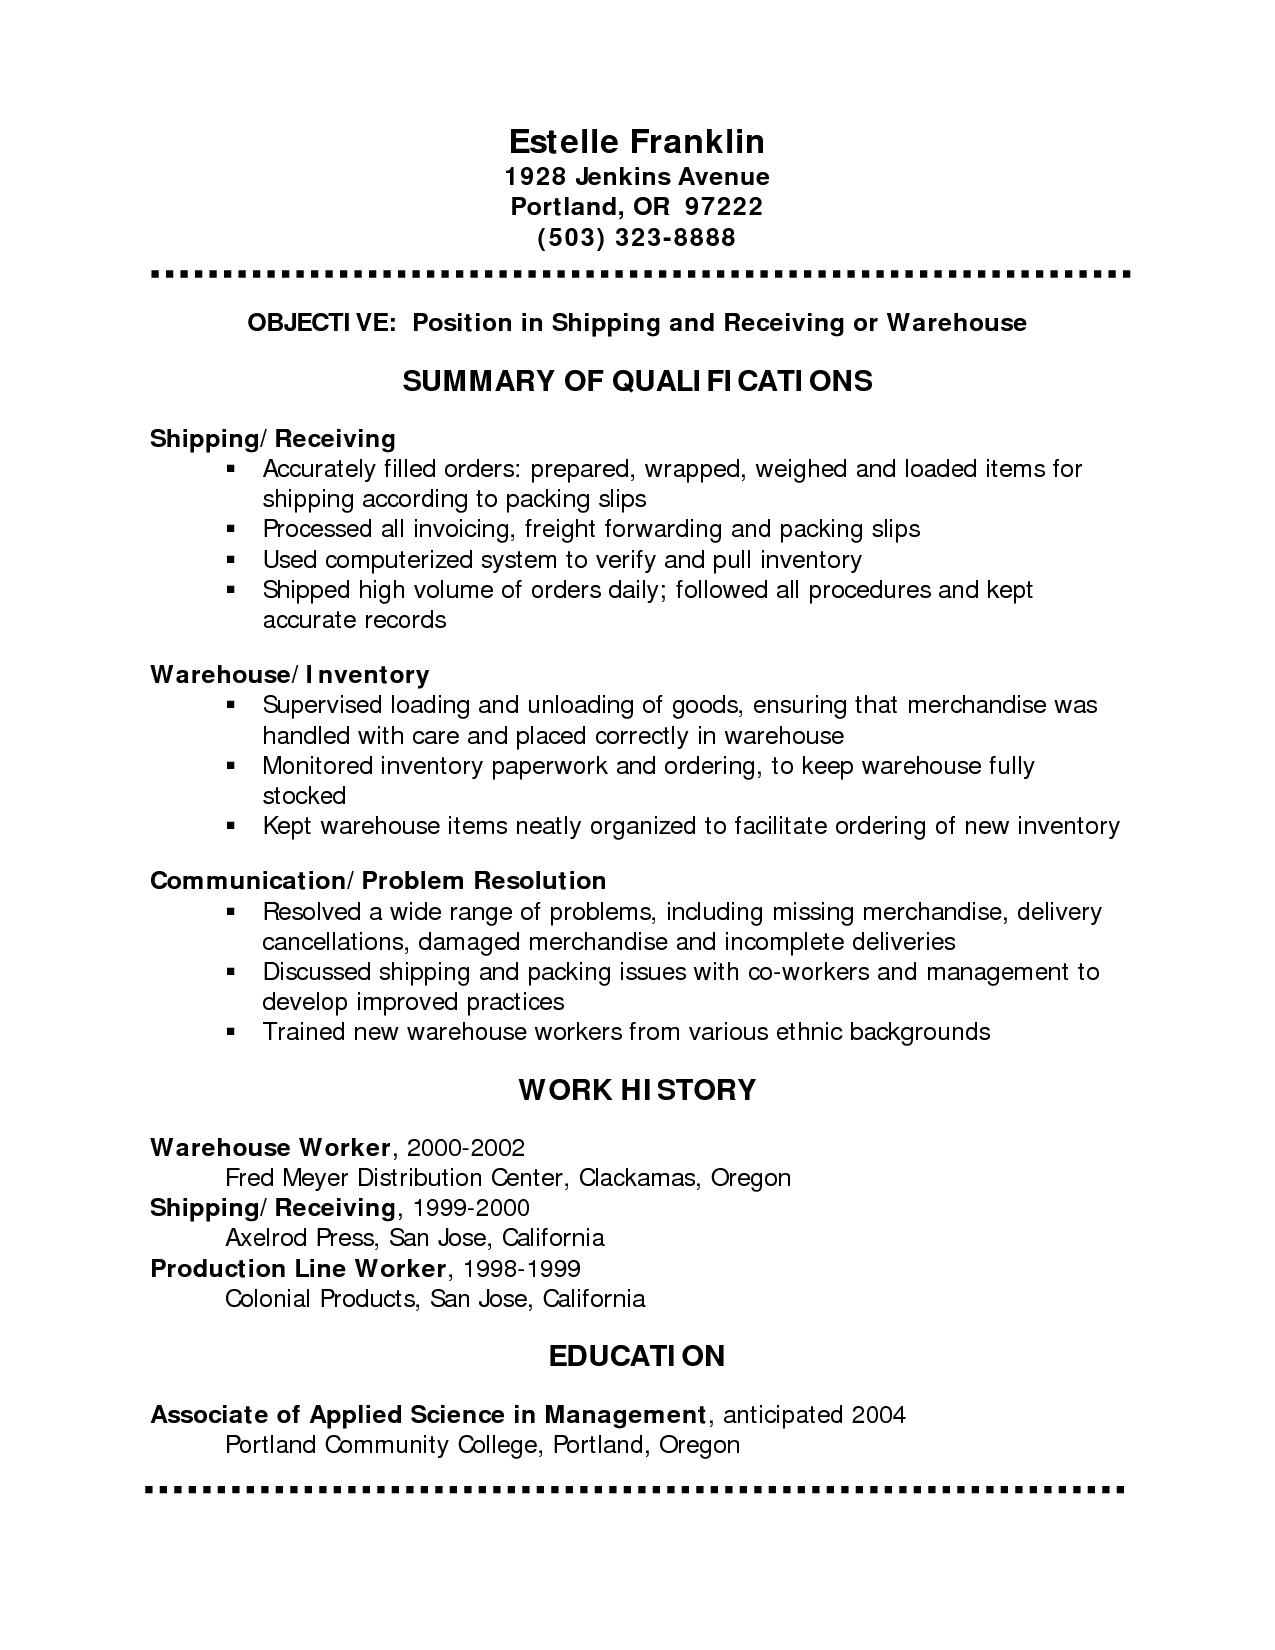 Resume examples free professional templates best template resume examples free professional templates best template downloadable yelopaper Image collections